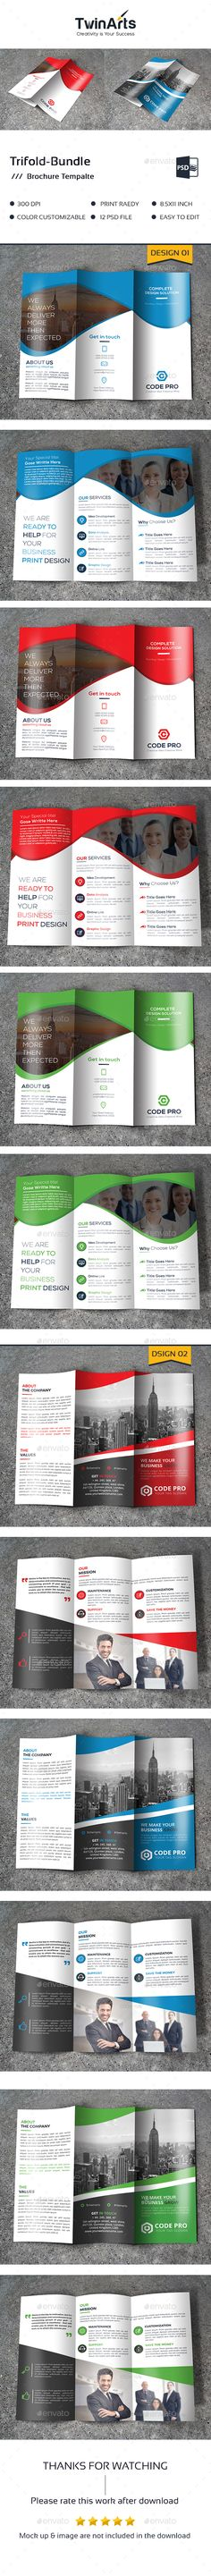 Tri-fold Brochure Templates PSD Bundle. Download here: https://graphicriver.net/item/trifold-bundle_2-in-1/17460824?ref=ksioks